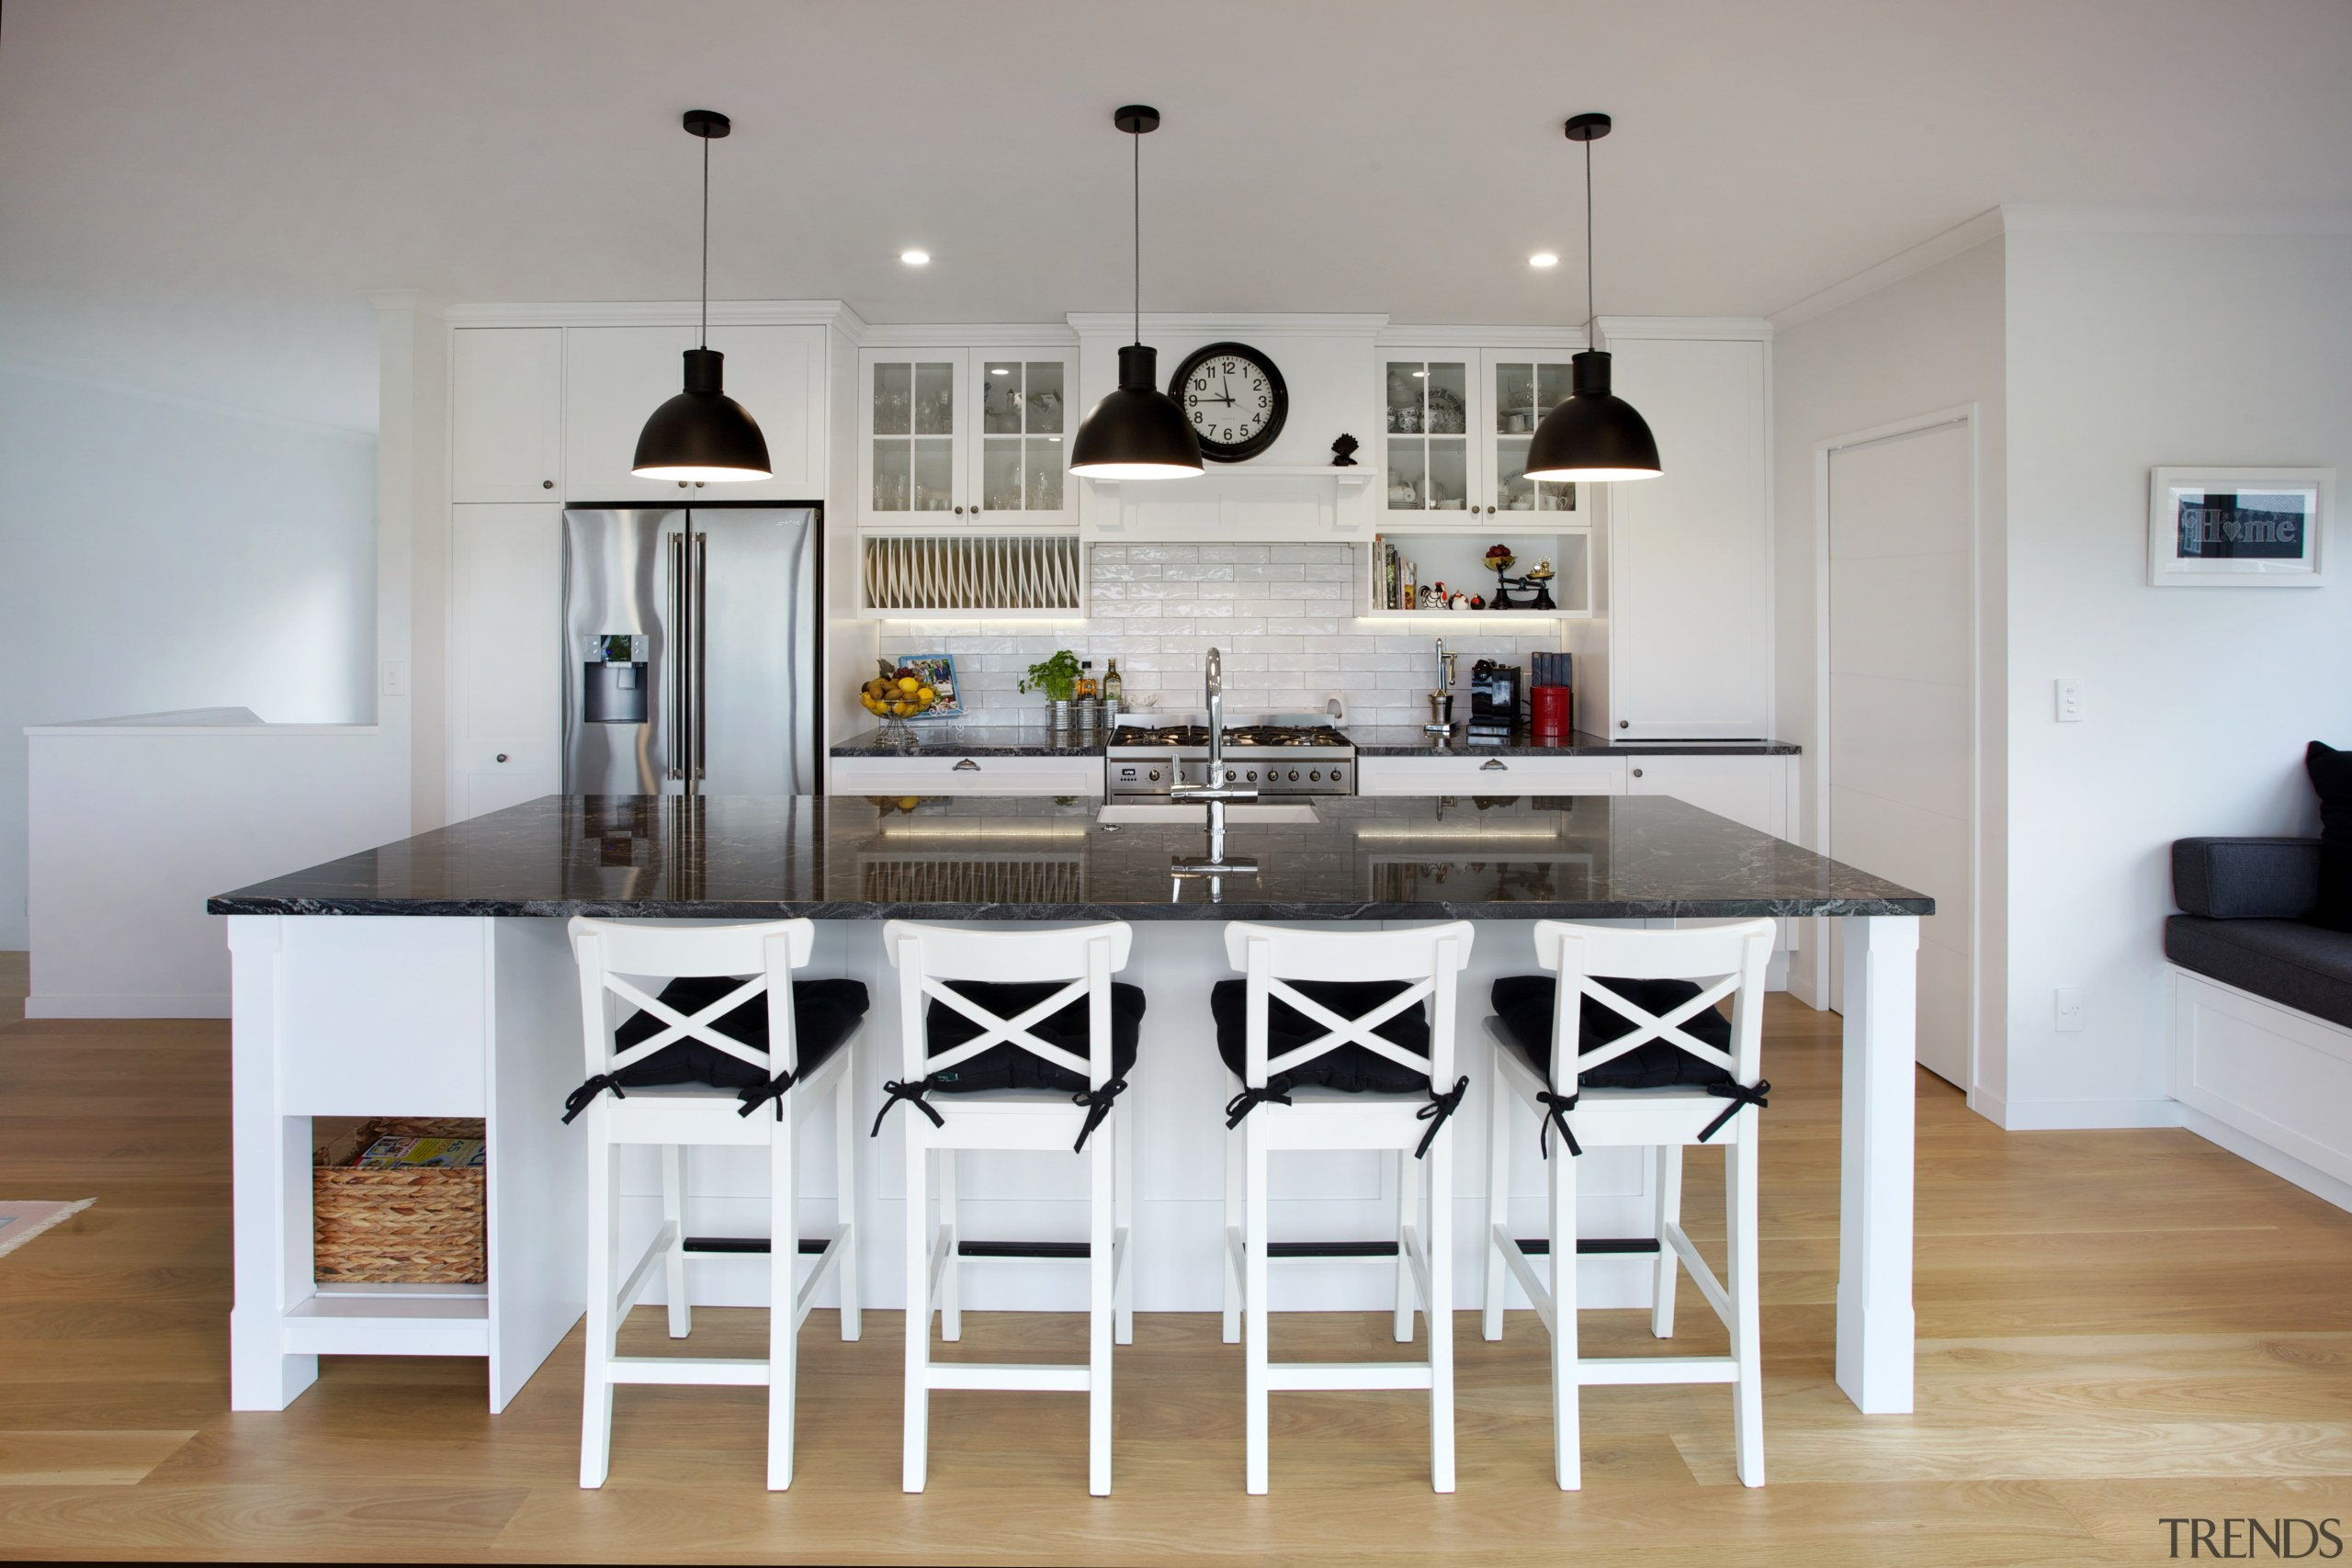 At your service  everything is immediately to chair, countertop, cuisine classique, dining room, furniture, interior design, kitchen, room, table, gray